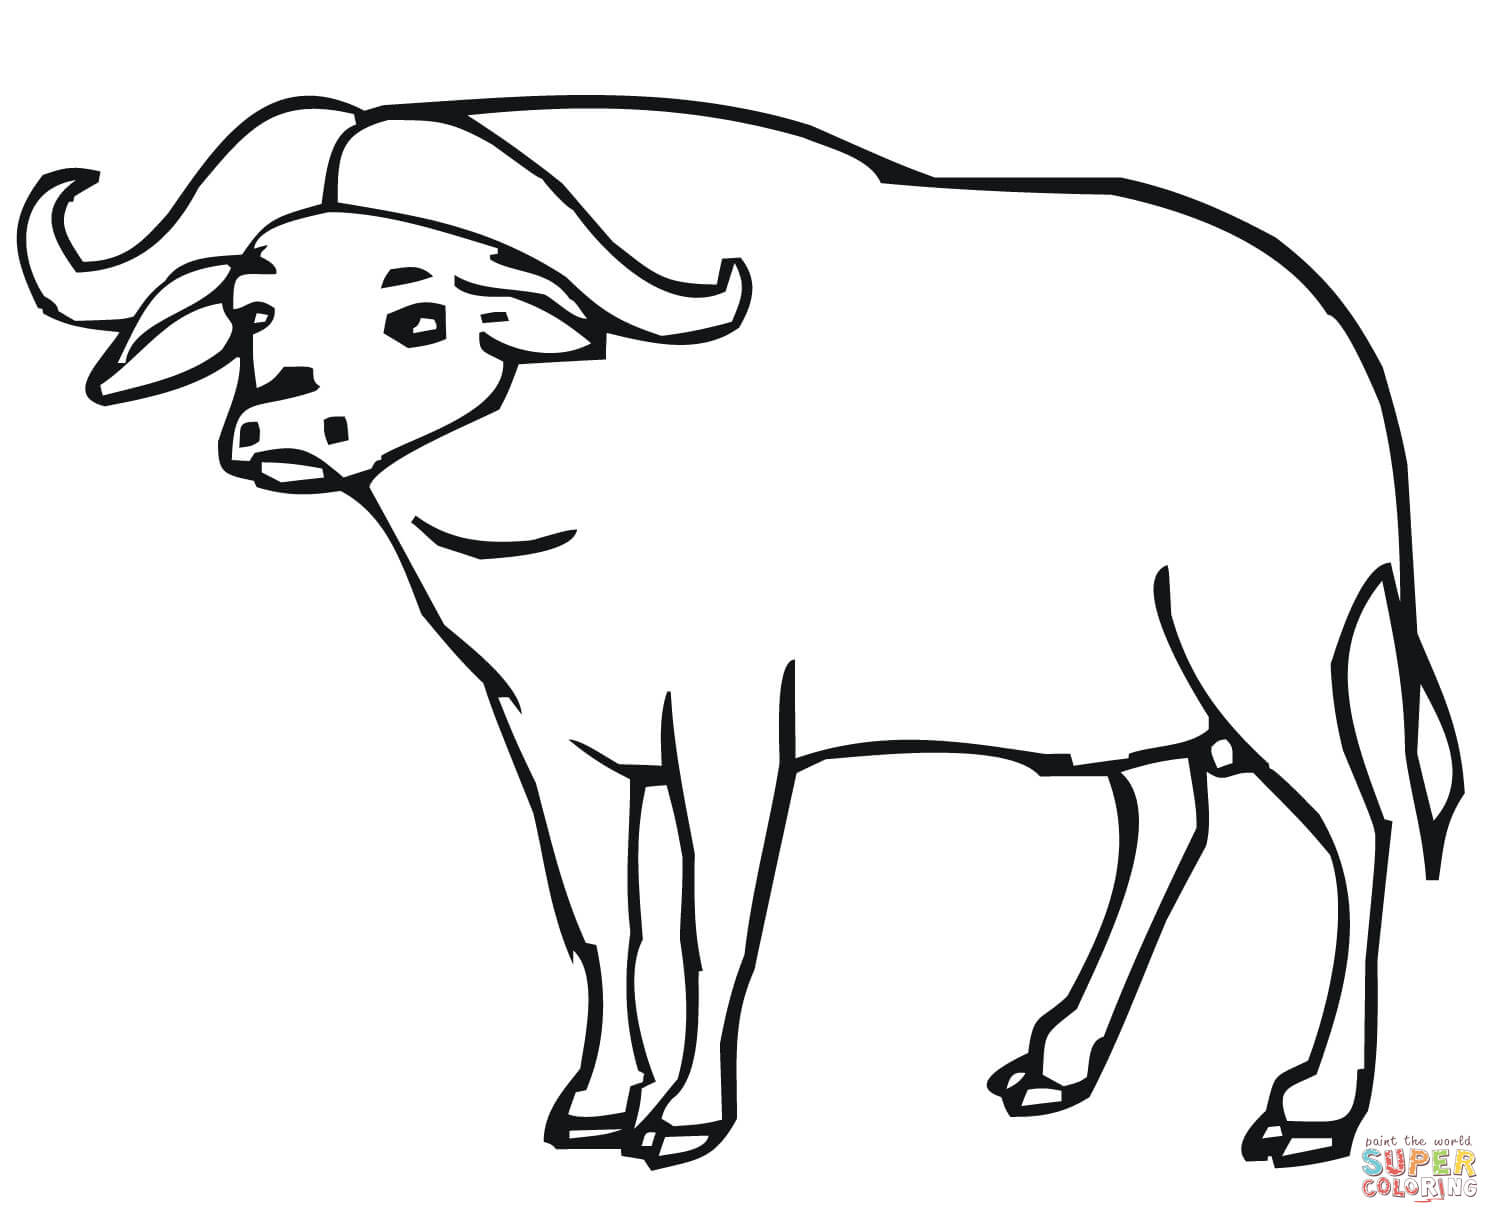 Carabao Coloring Pages At Getcolorings